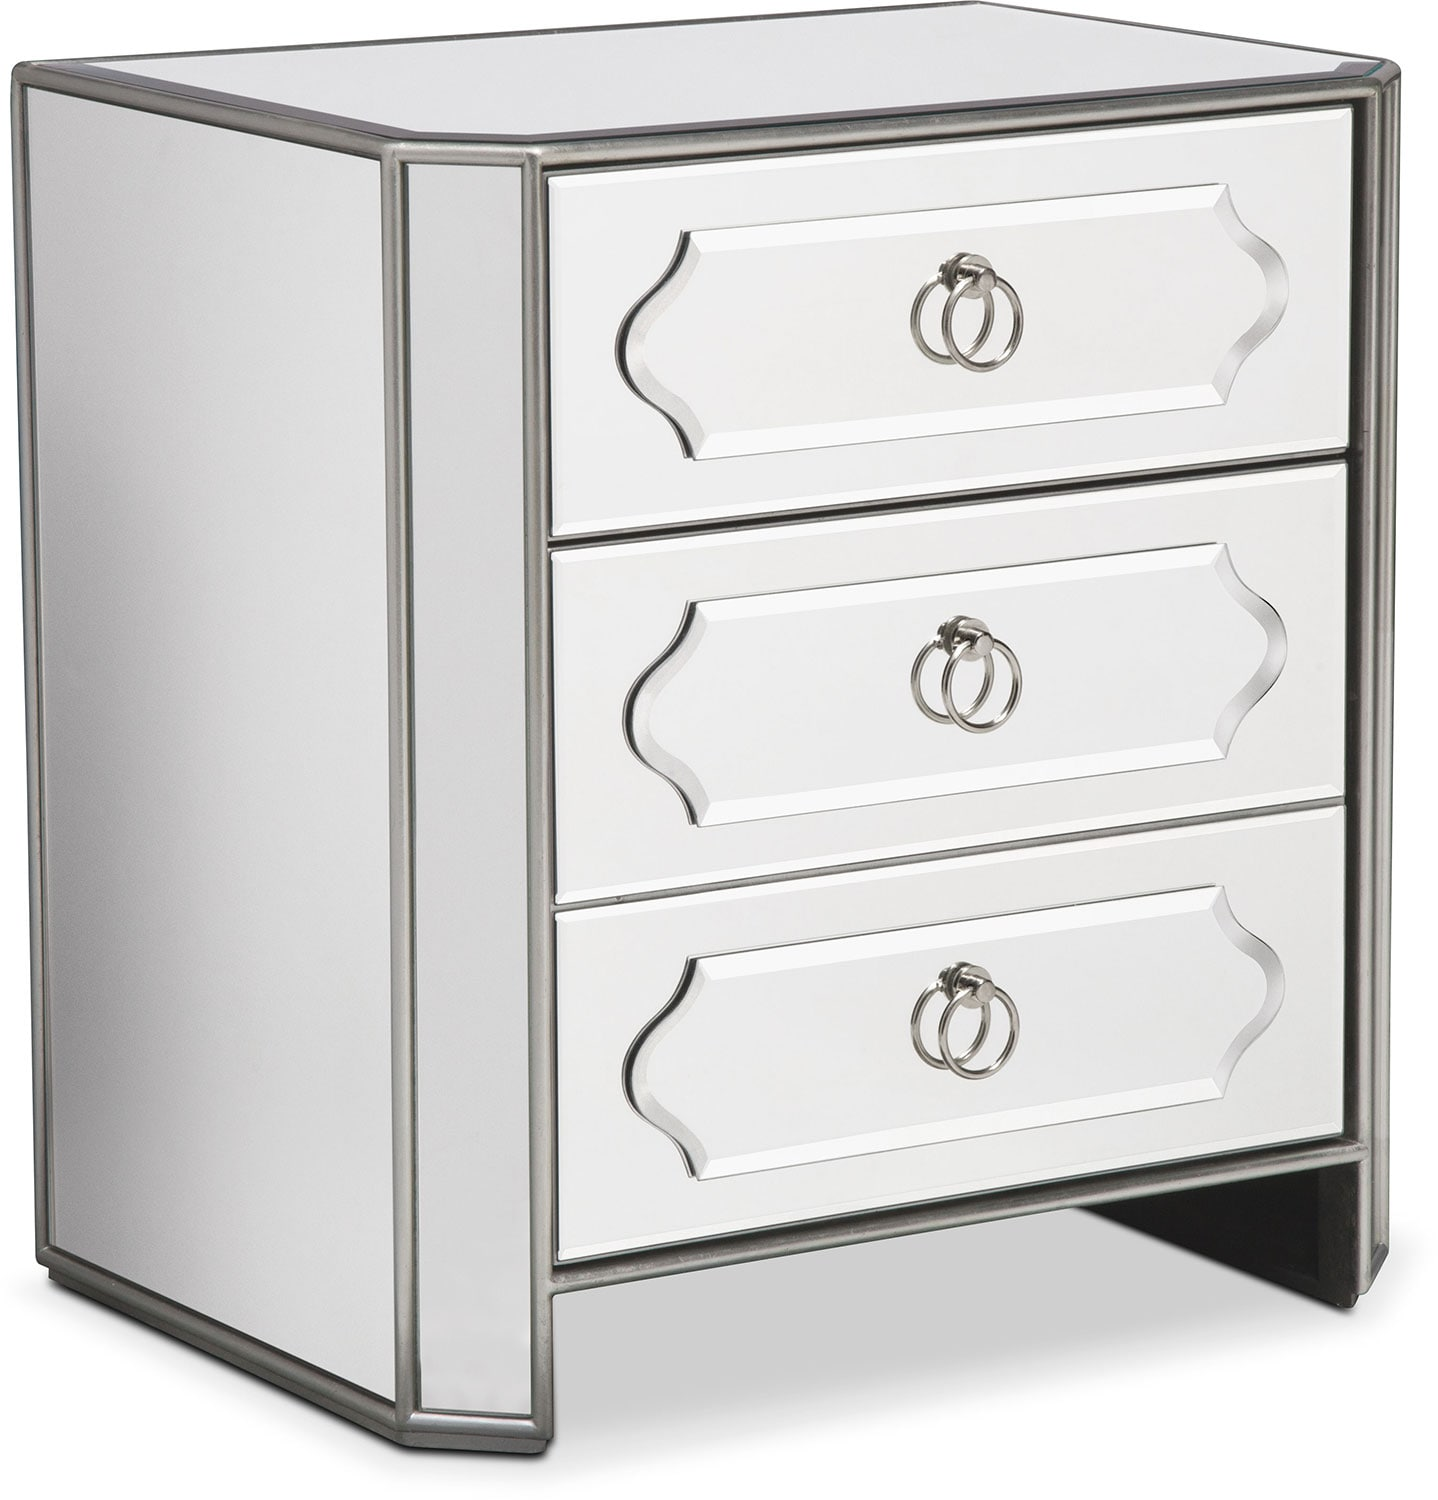 Bedroom Furniture - Harlow Bedside Chest